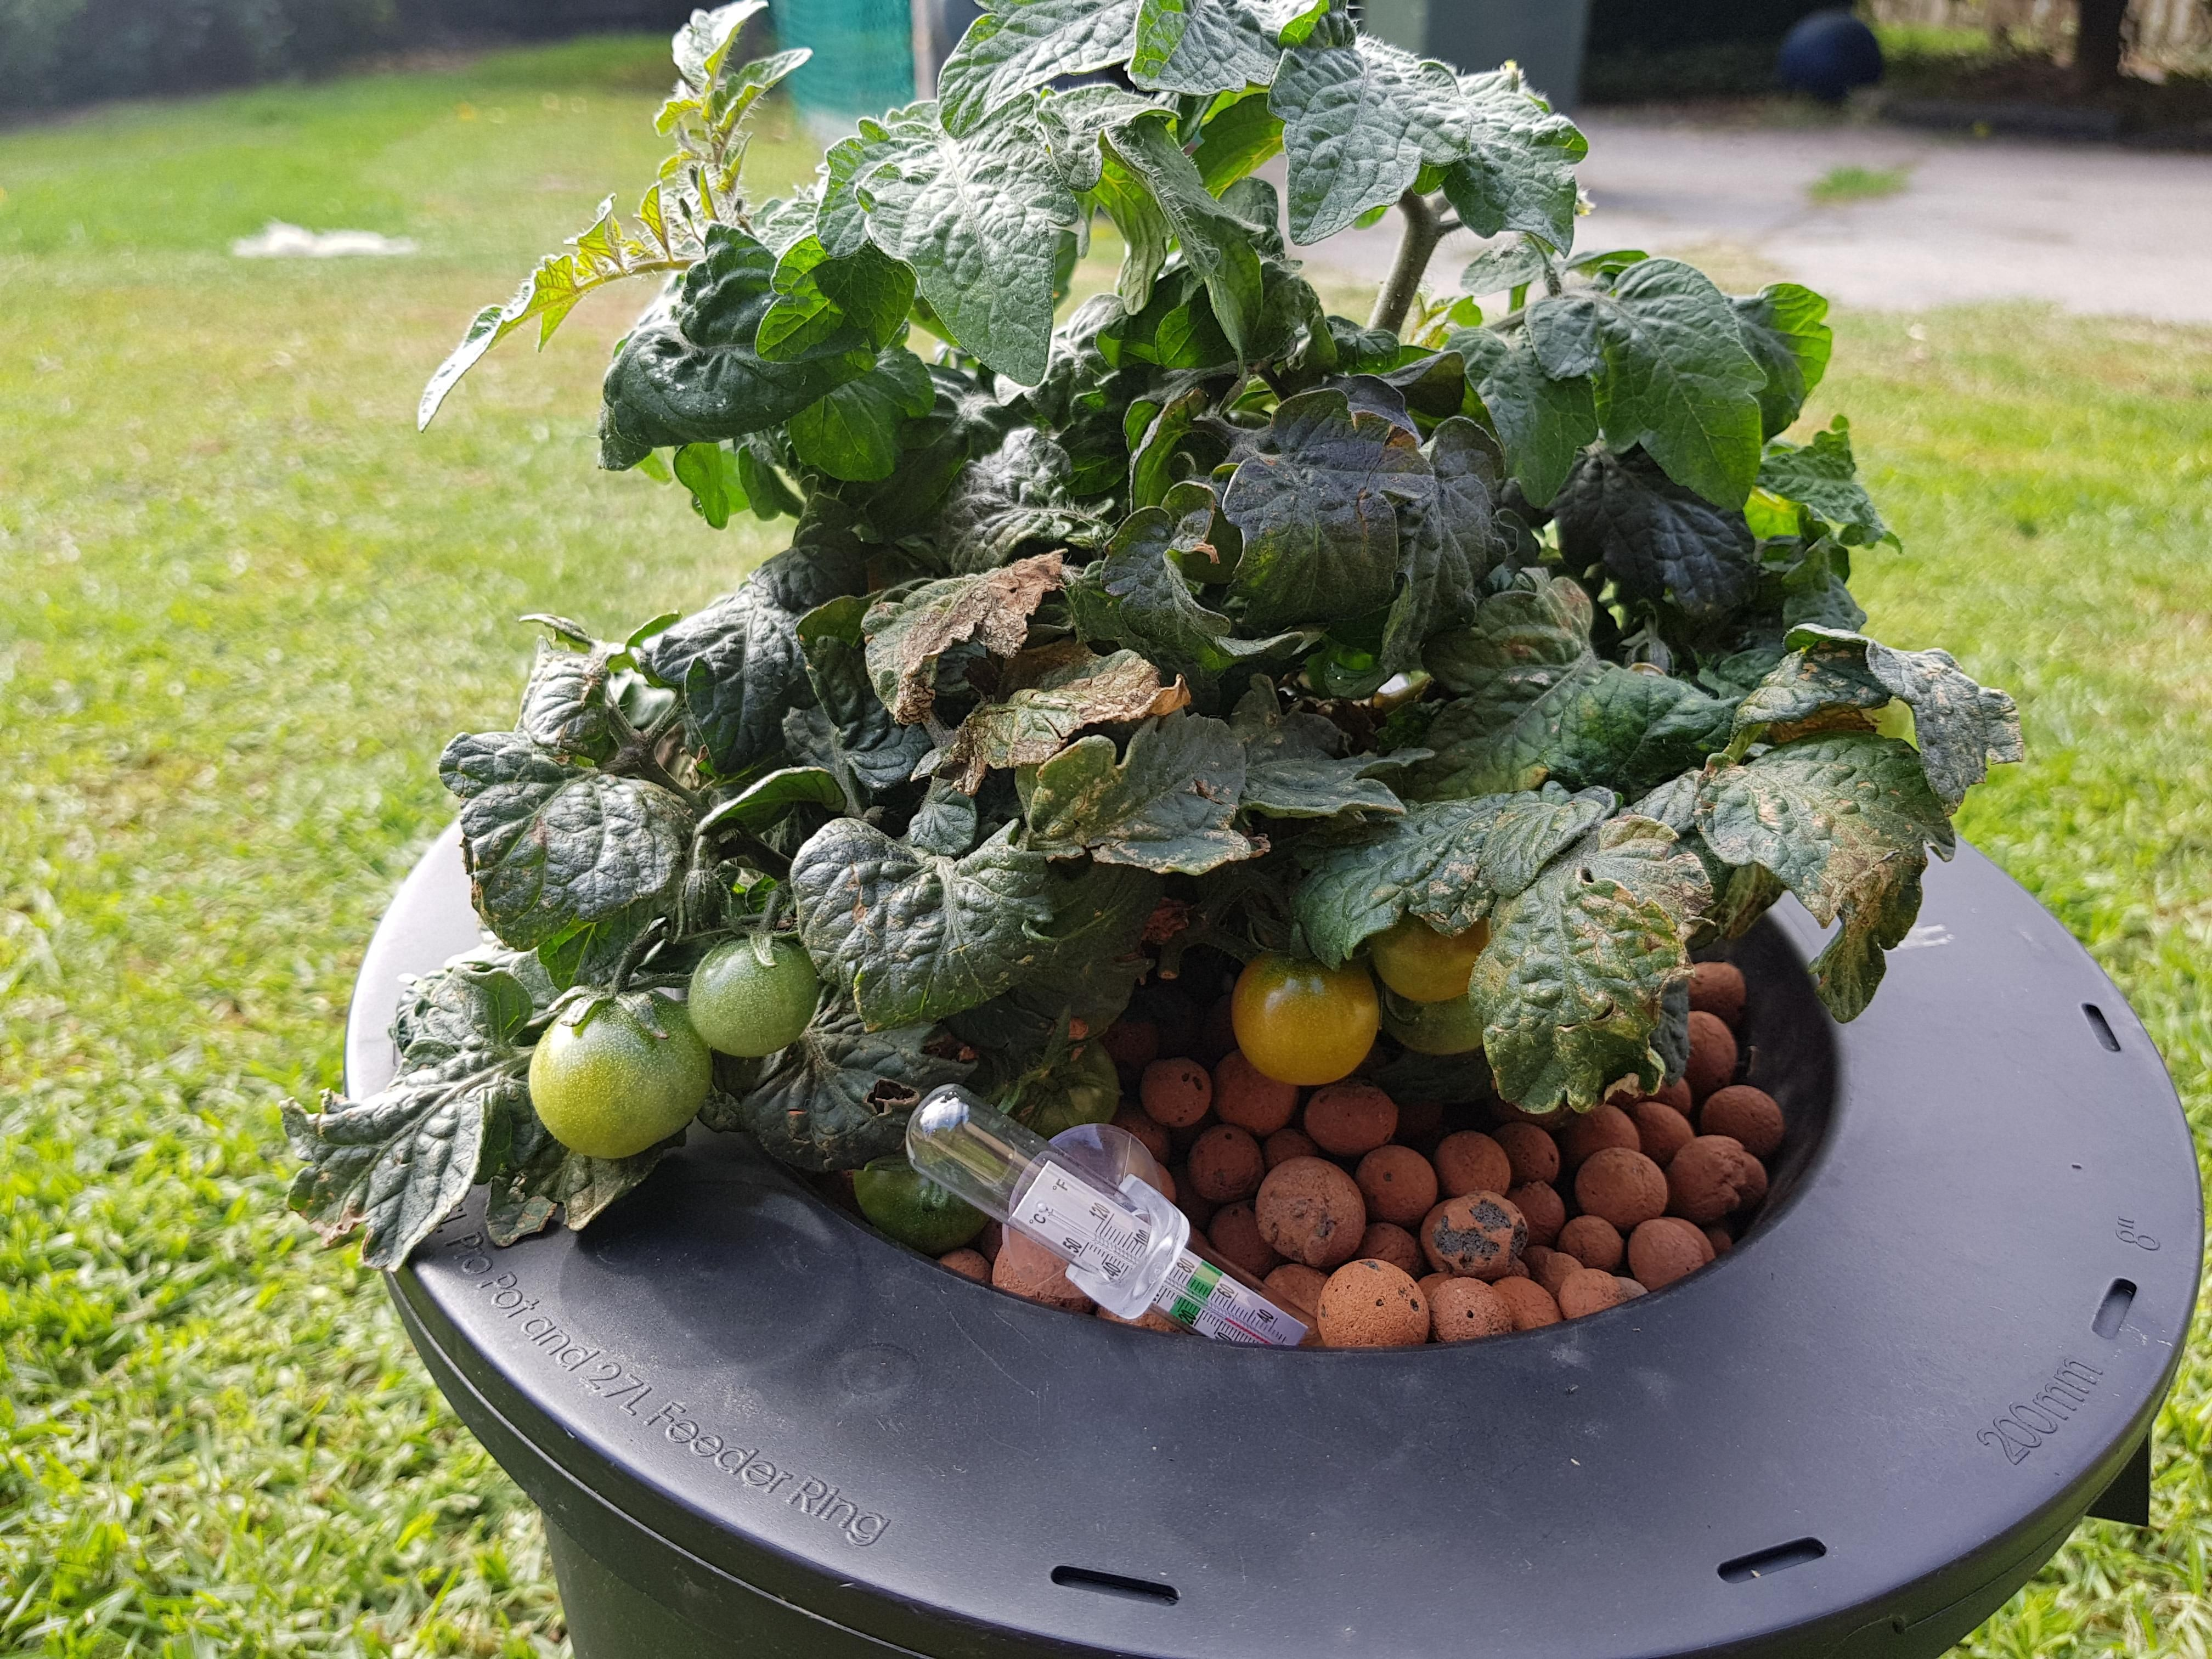 Rustlooking patches on indoor hydroponic tomatoes (Zone 3